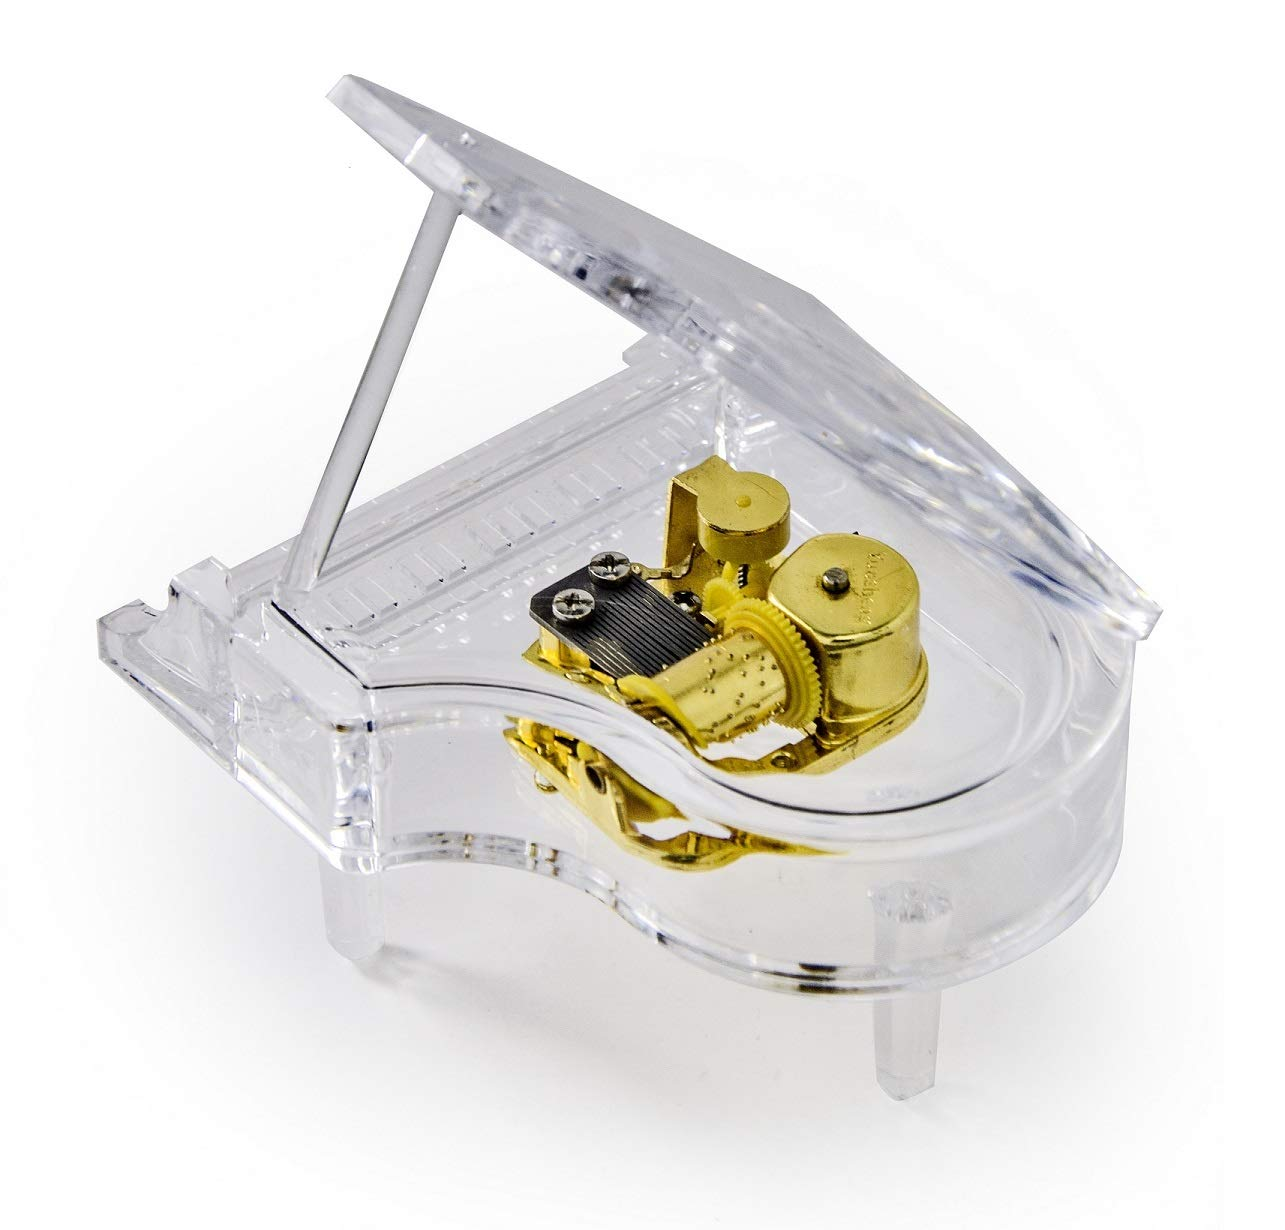 MusicBoxAttic Clear Acrylic 18 Note Grand Piano with Propped Lid - Over 400 Song Choices - Shall We Dance